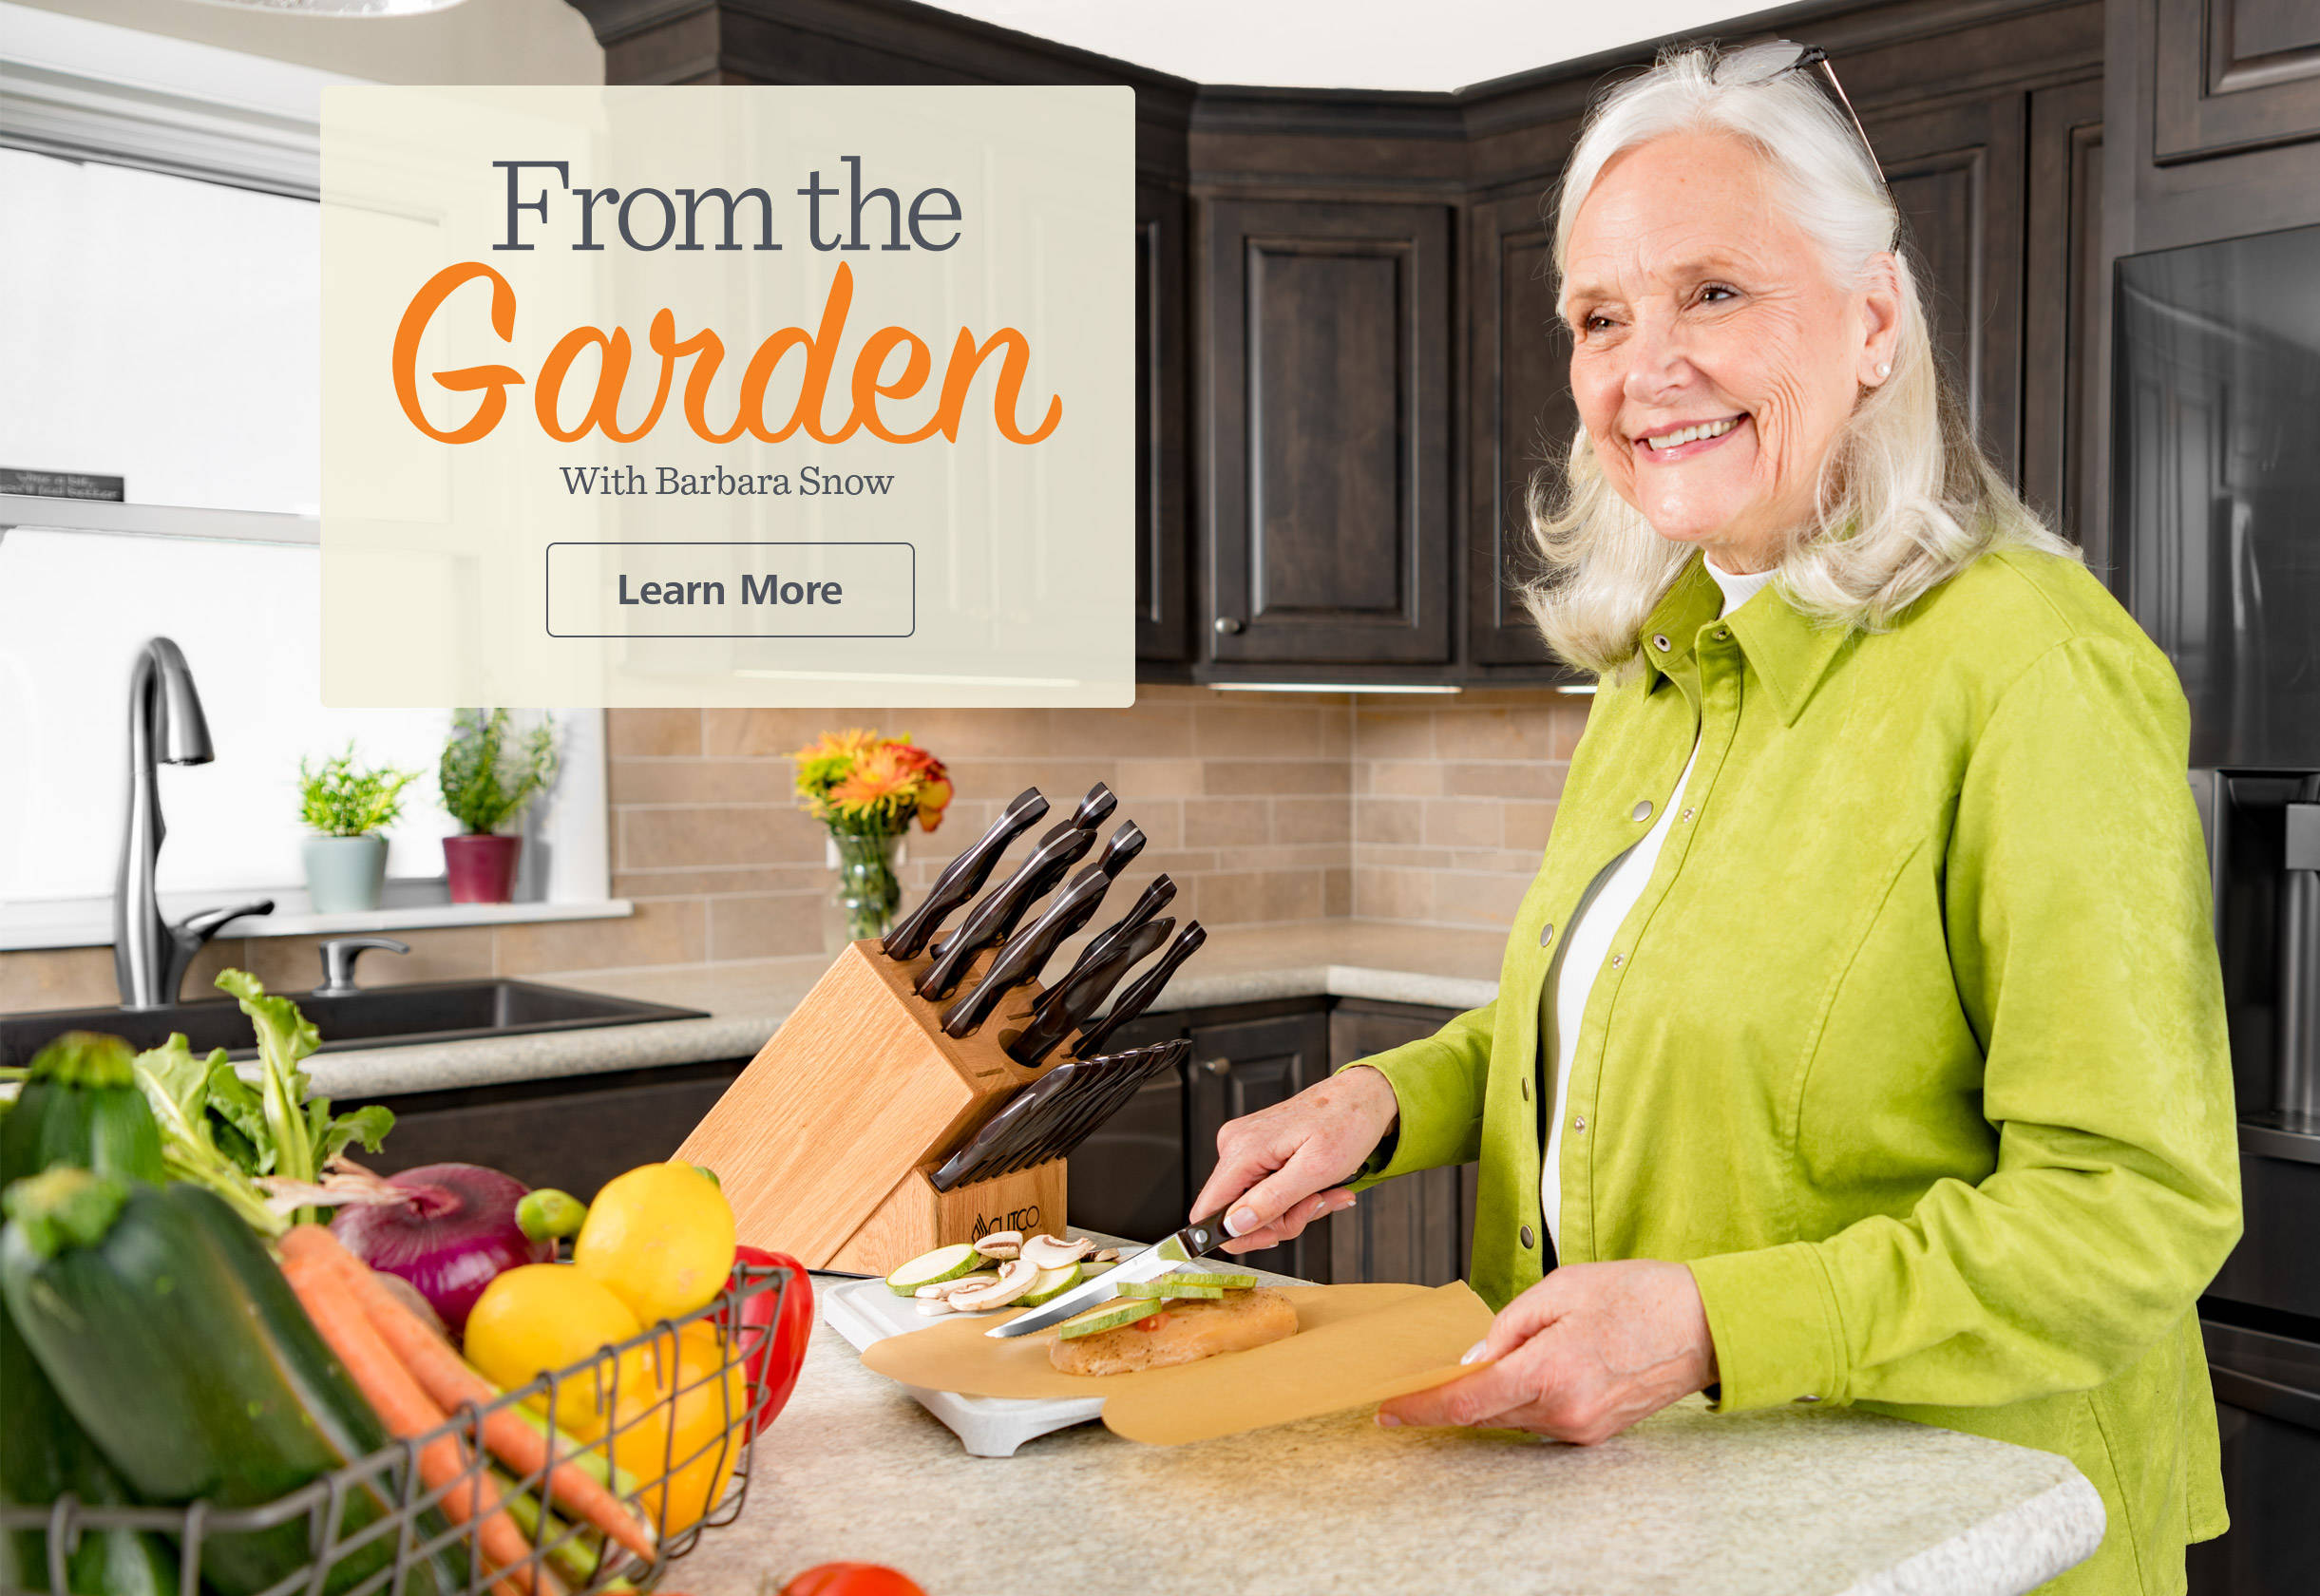 From the Garden with Barbara Snow